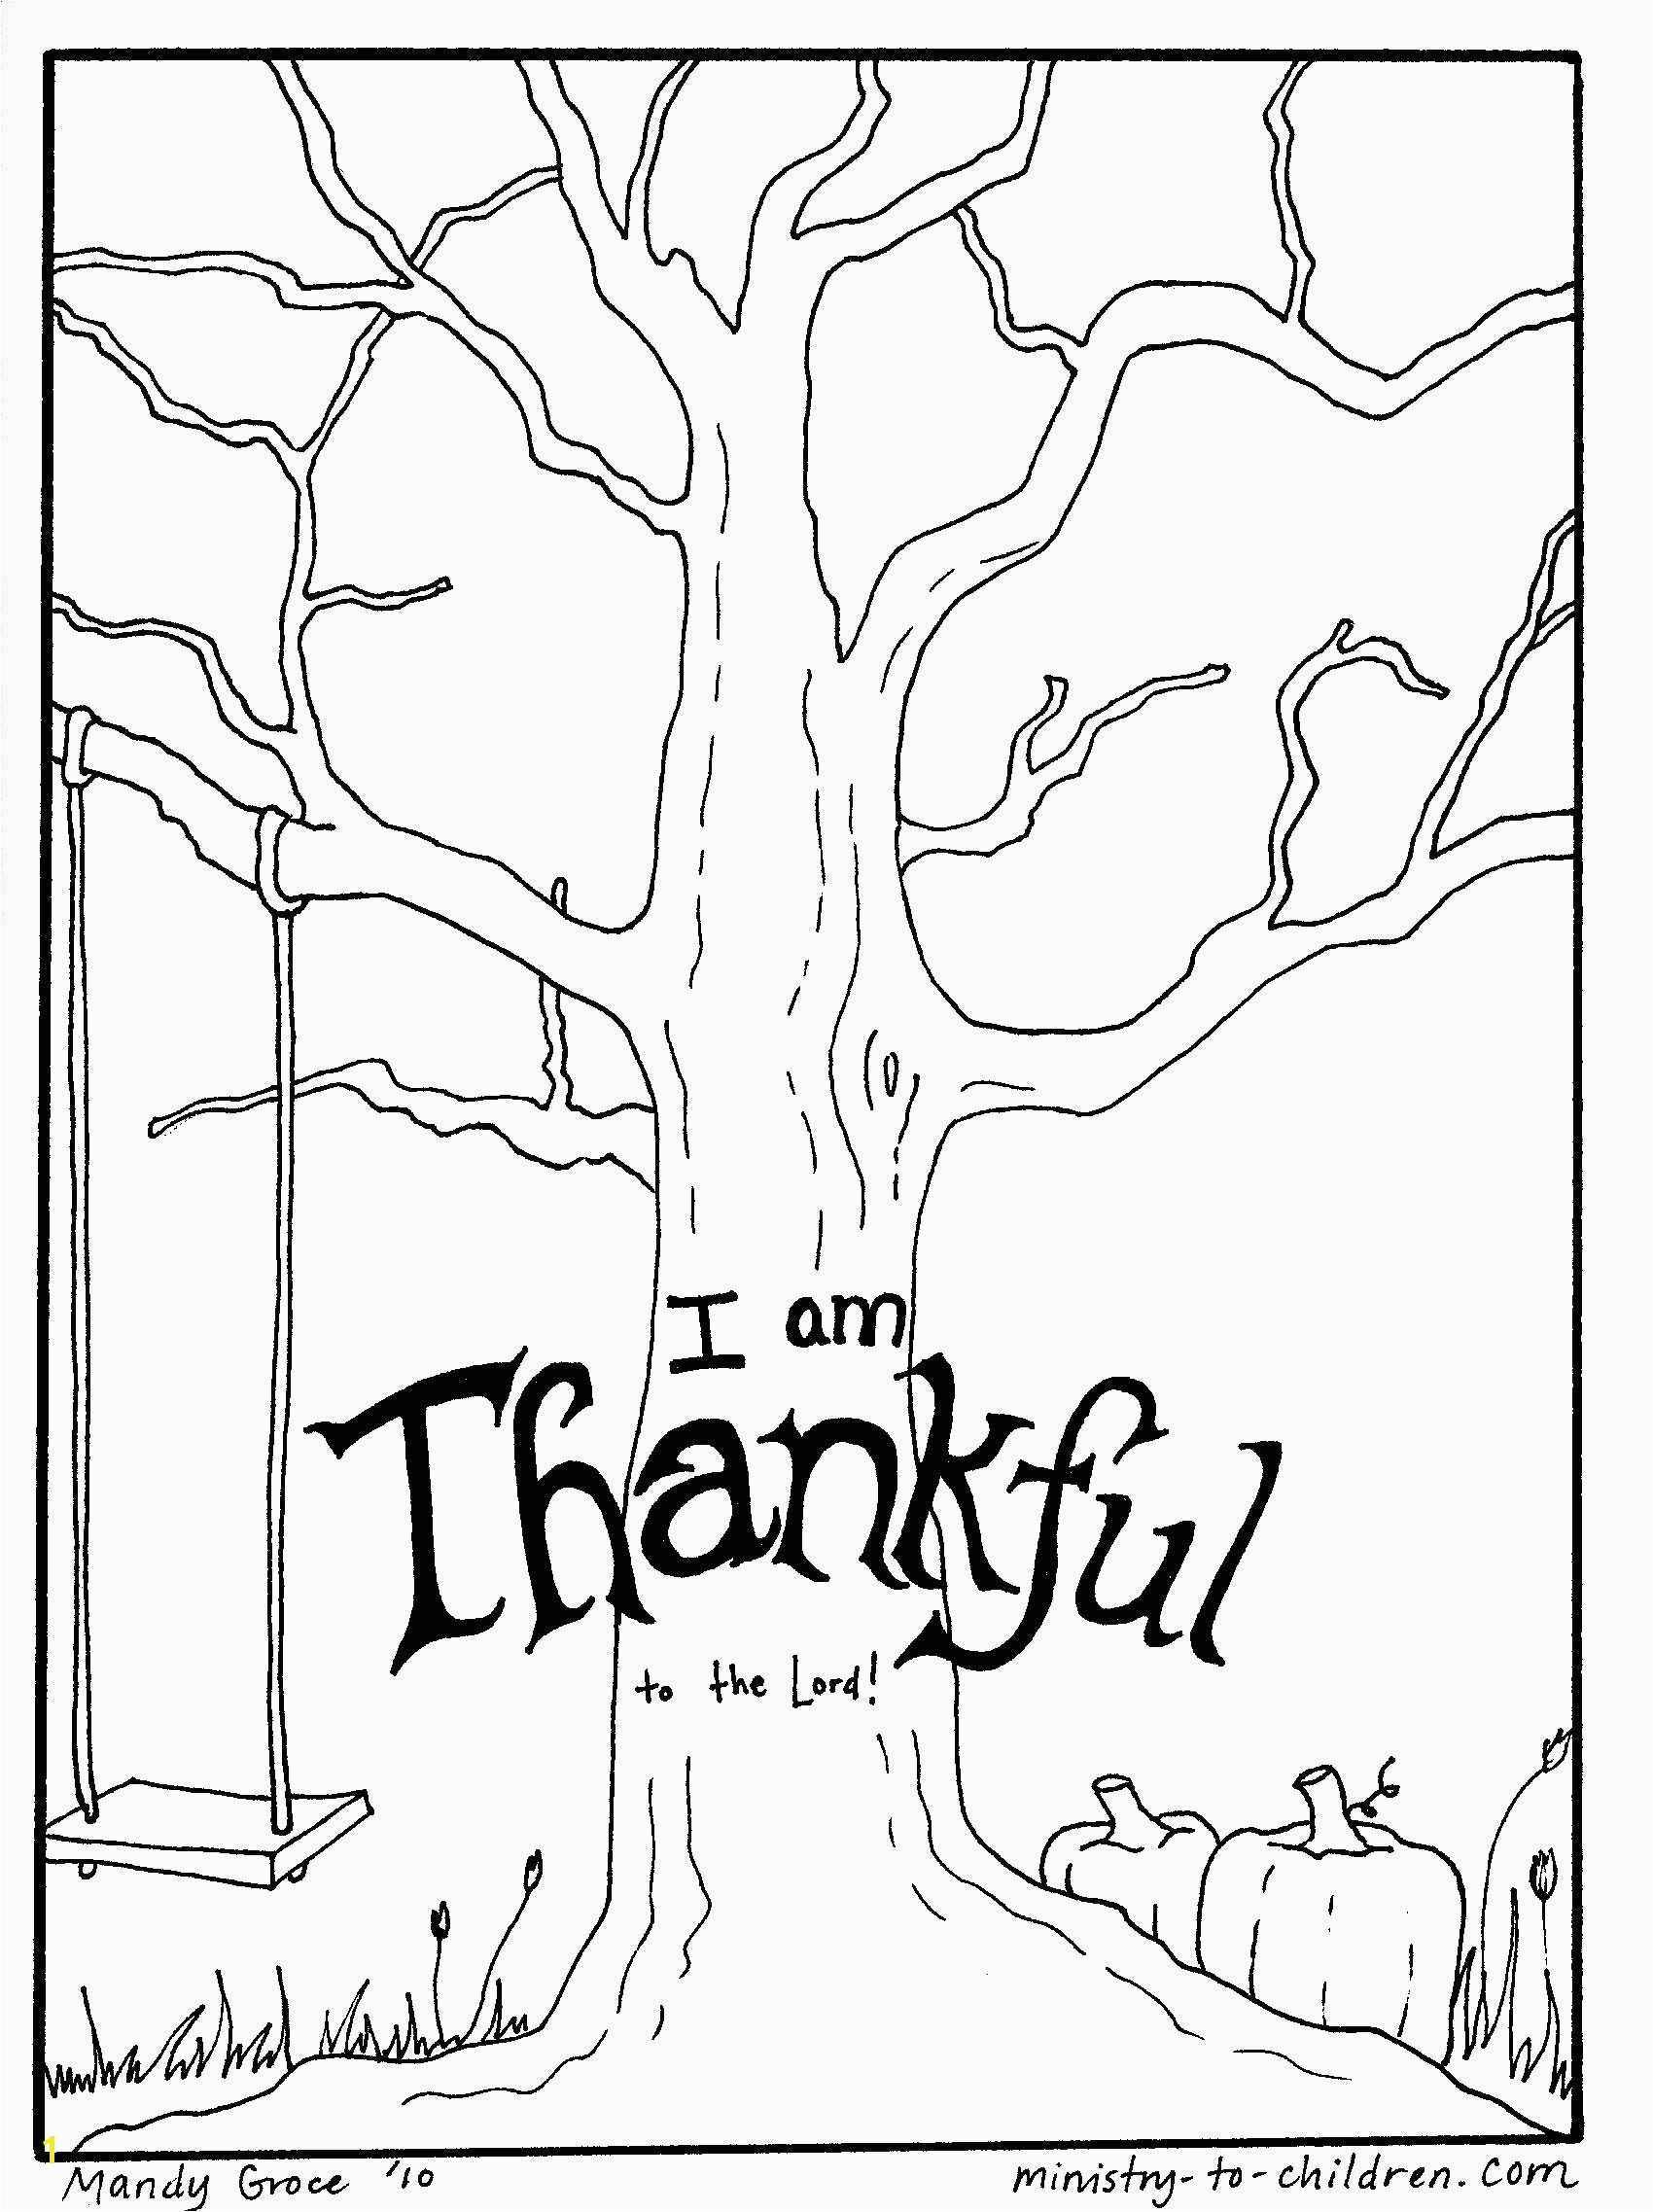 Lds Coloring Pages Honesty Lds Coloring Pages Awesome New solomon asks for Wisdom Coloring Page